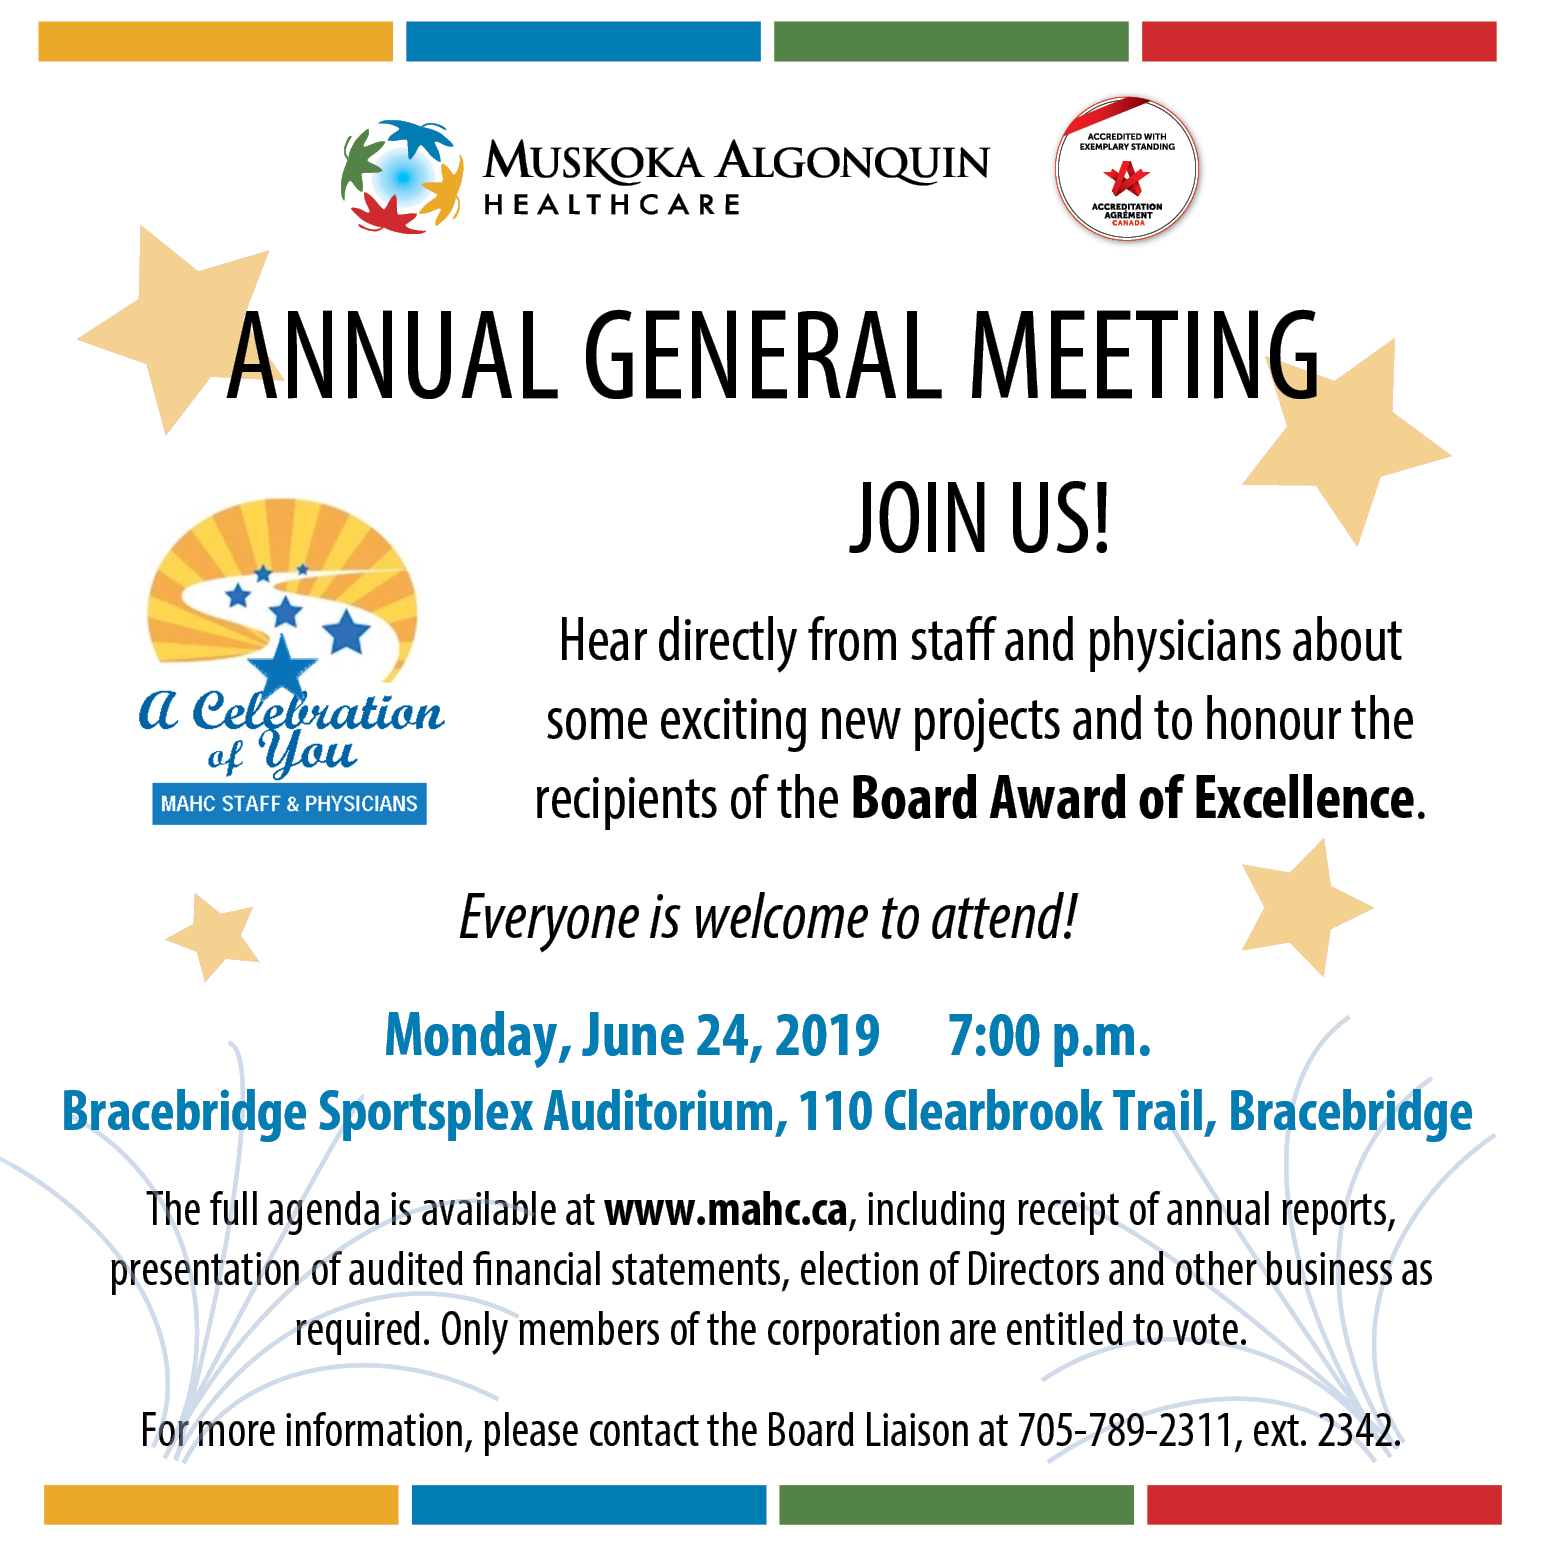 Annual General Meeting notice